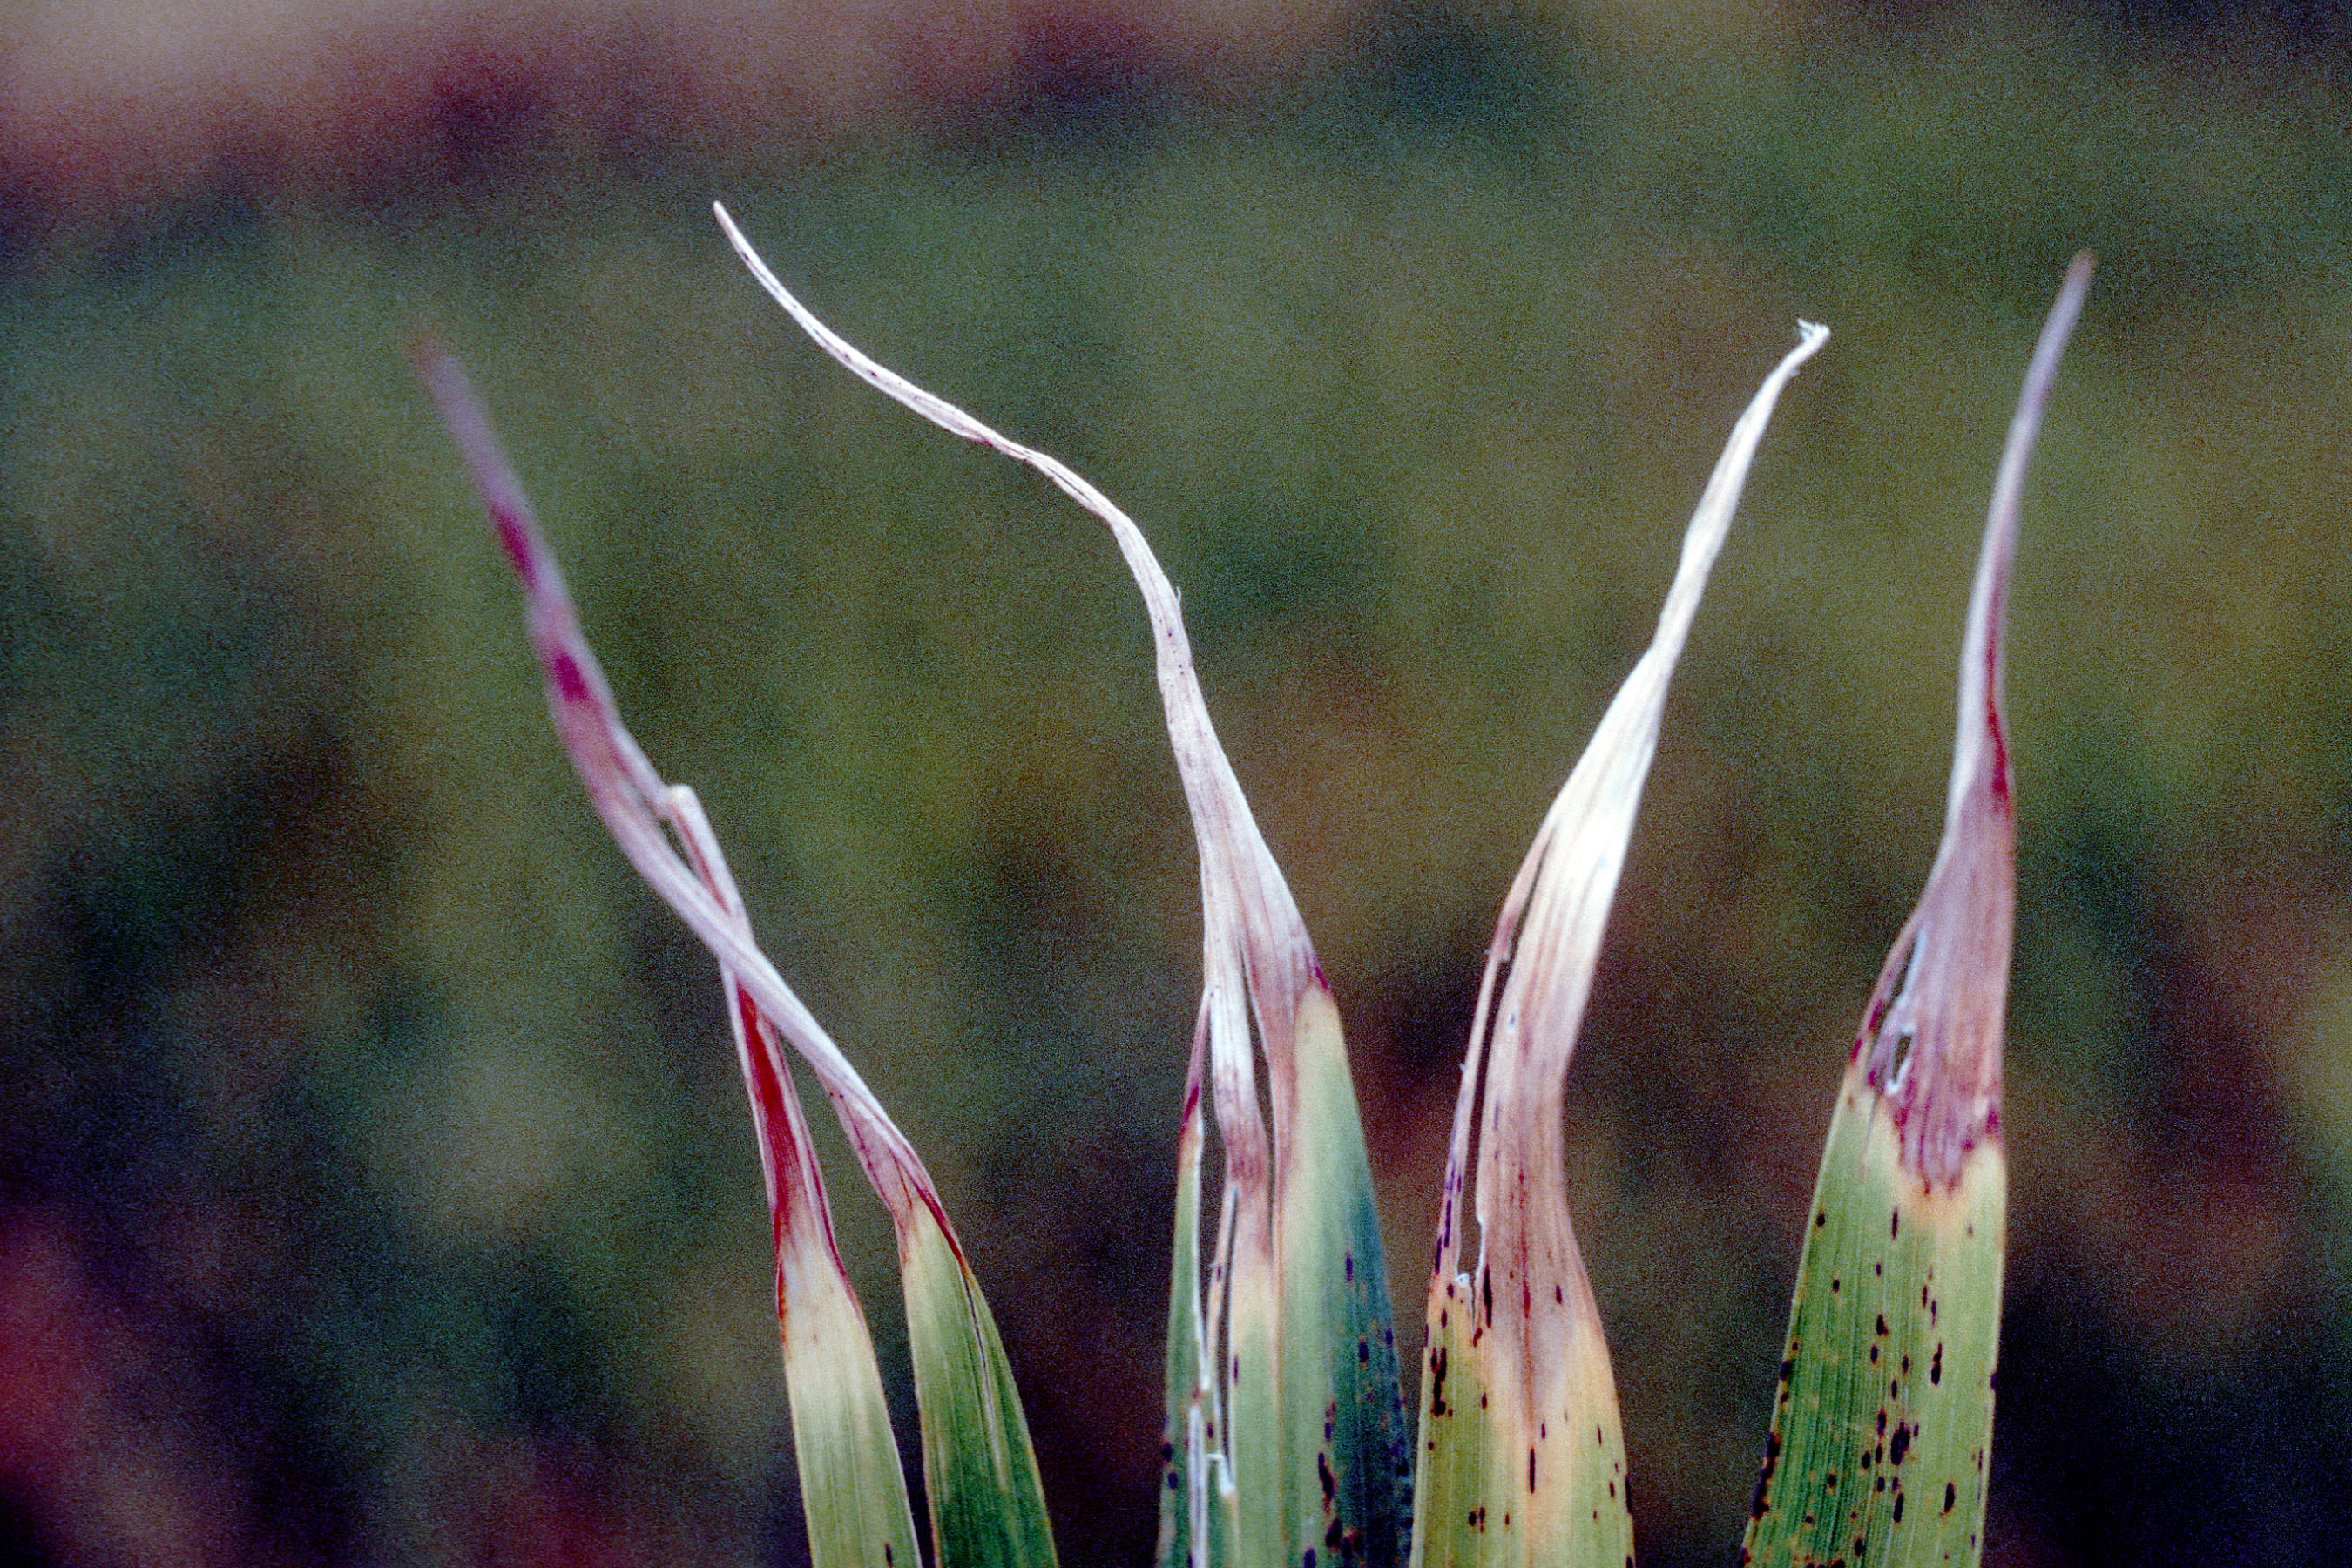 Later Symptoms Caused By the White Tip Nematode